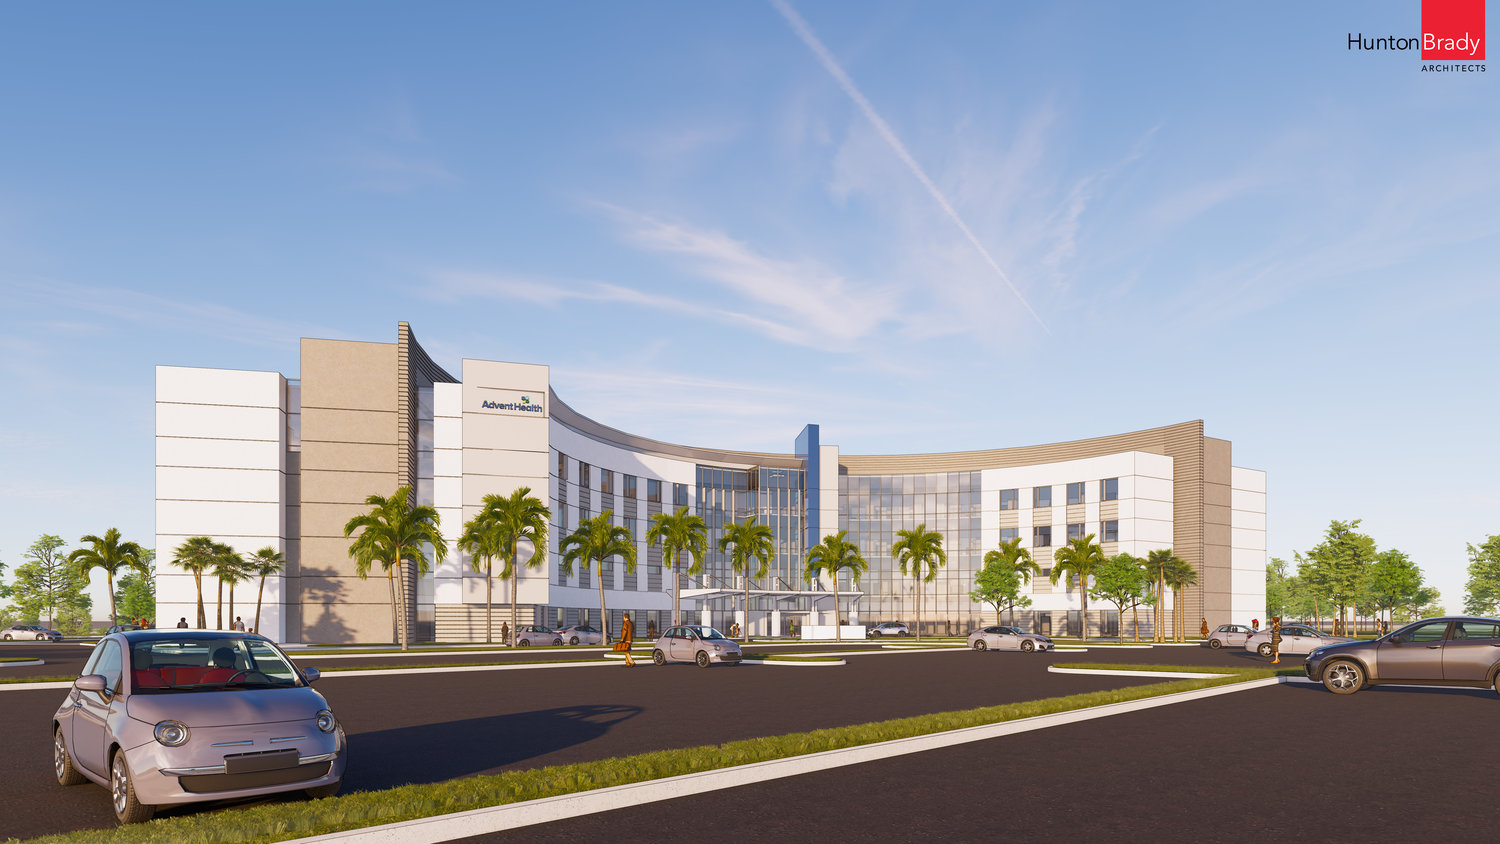 An outside rendering of the upcoming 100 bed hospital